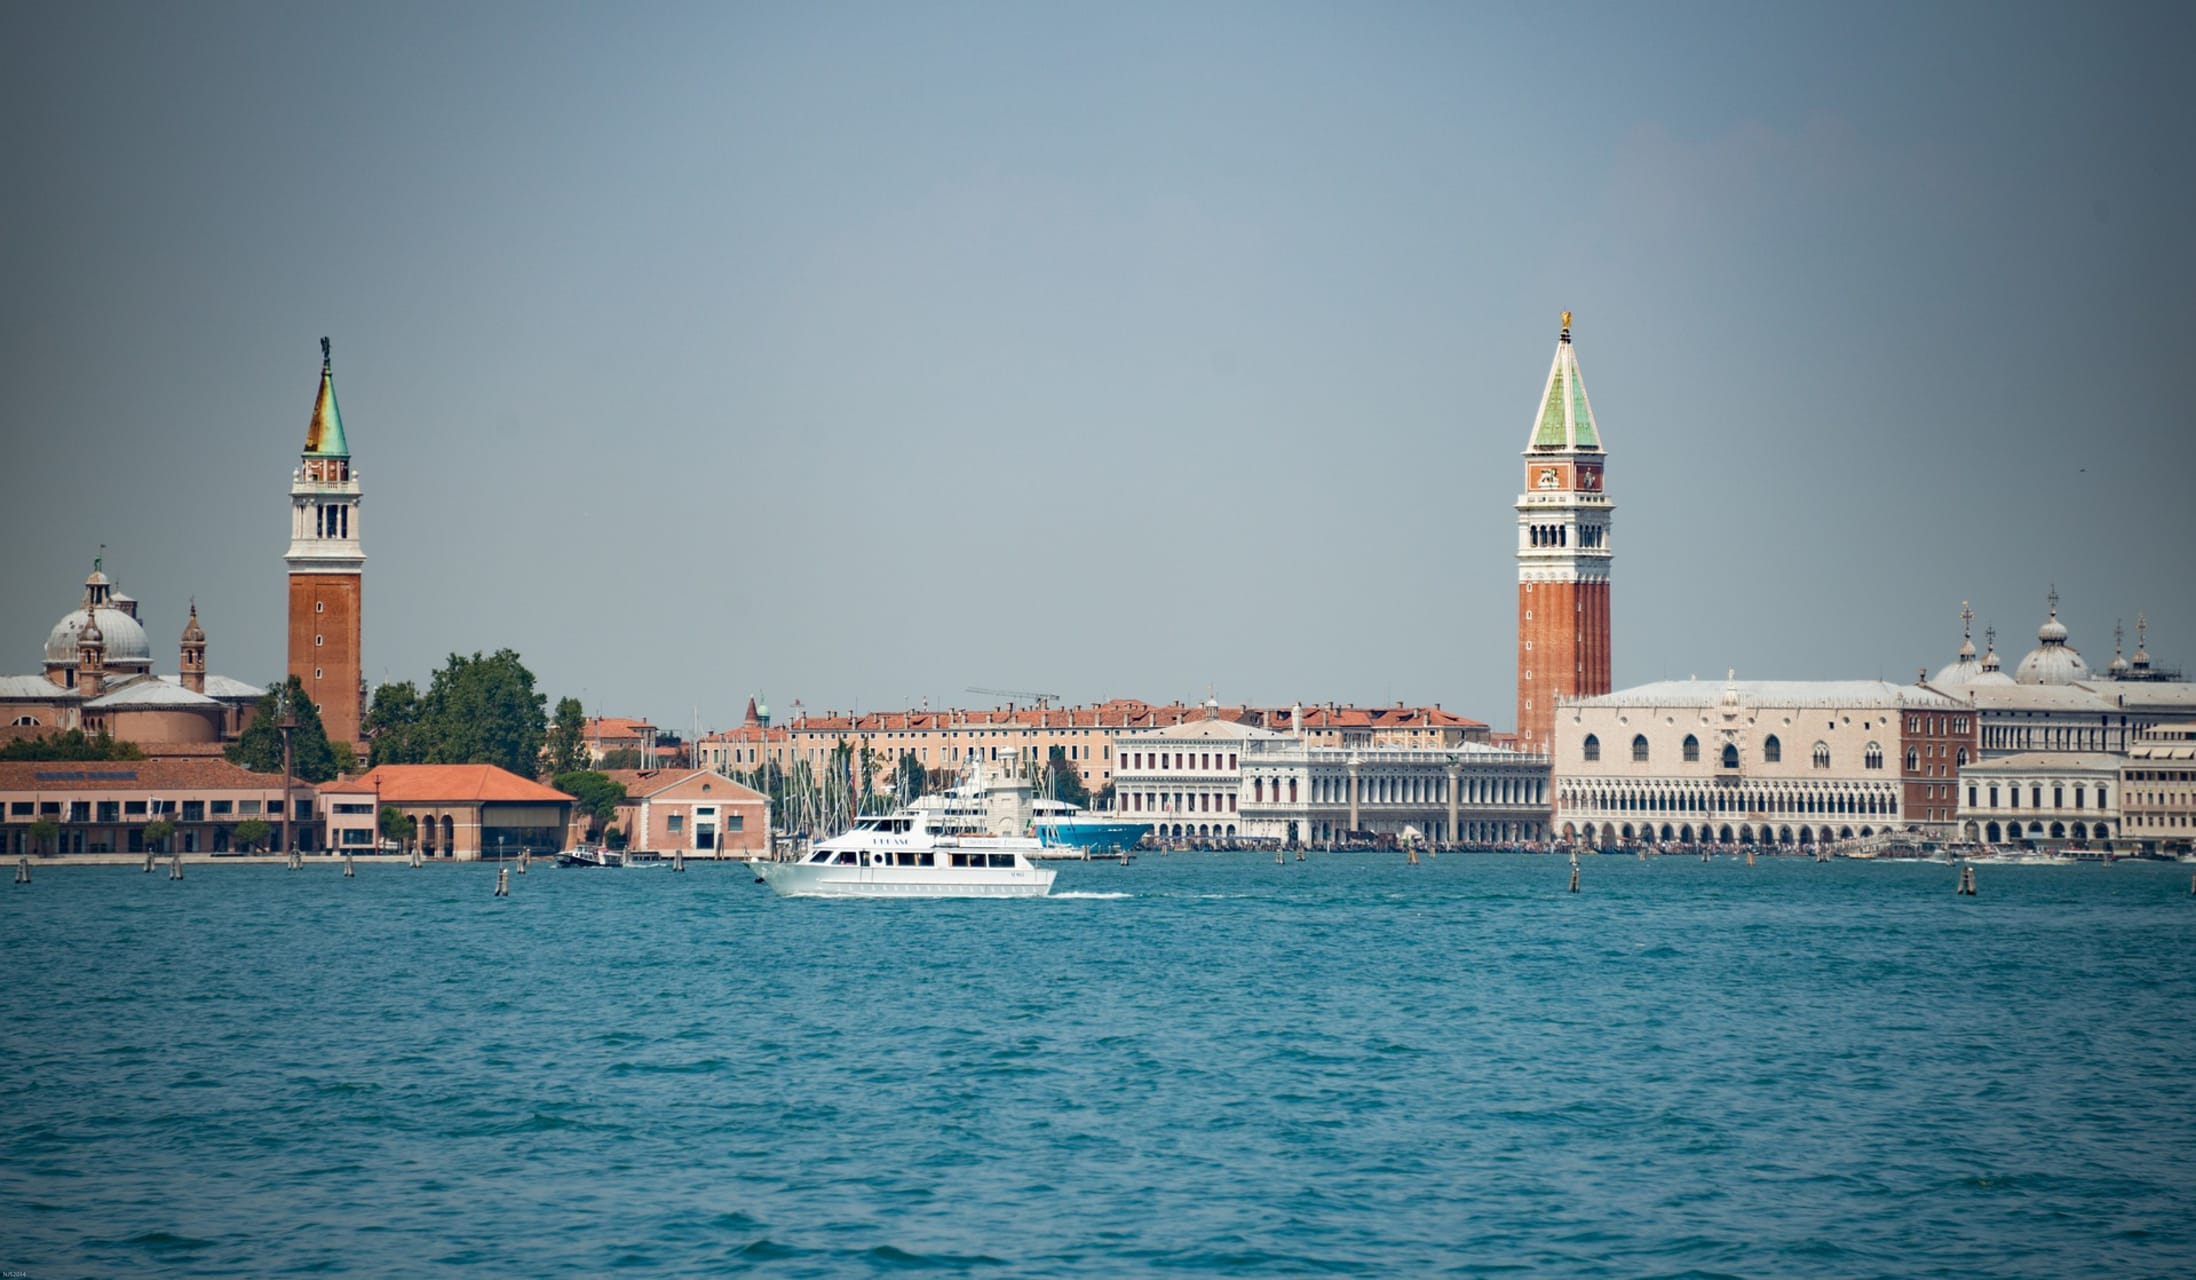 Venice - Tour of the St. Mark Bay by a Typical Private Venetian Boat